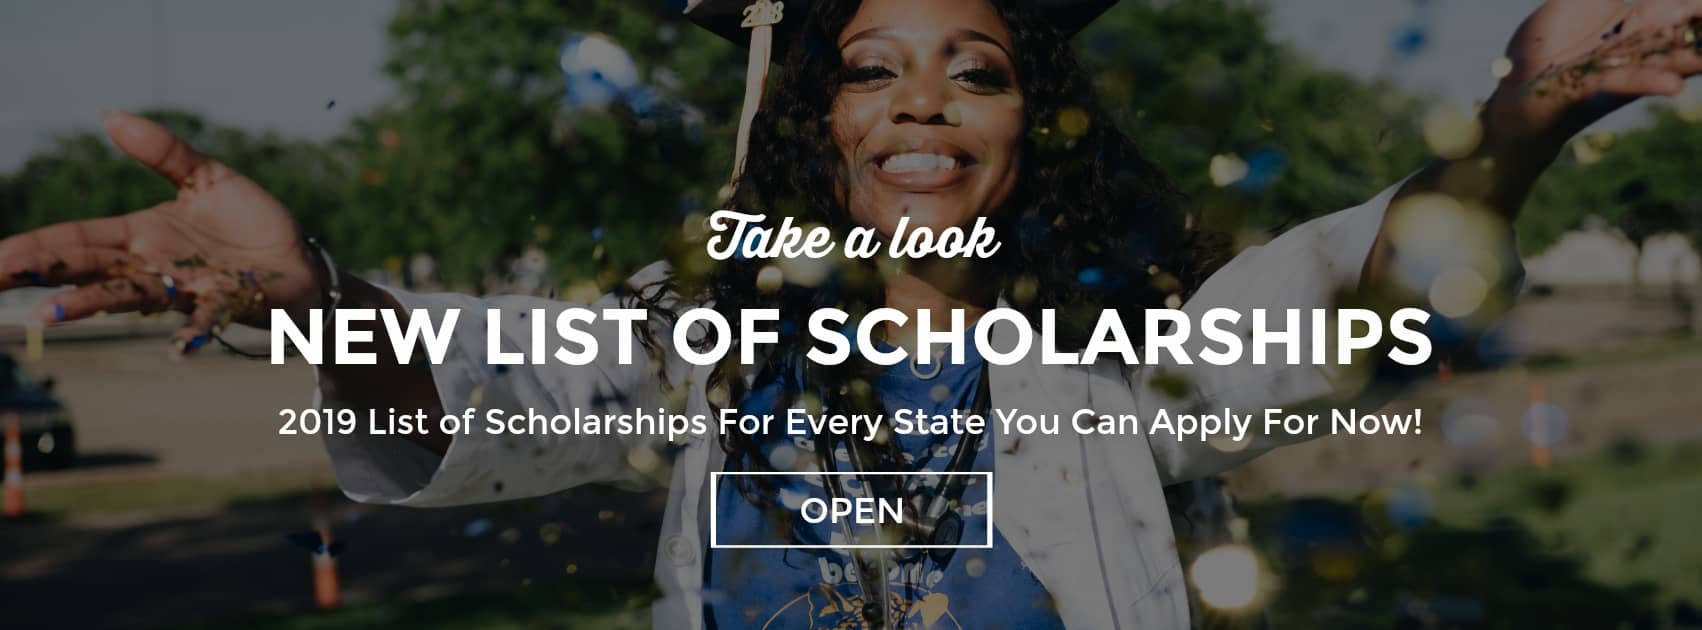 2019 List of Scholarships For Every State You Can Apply For Now! - button 2